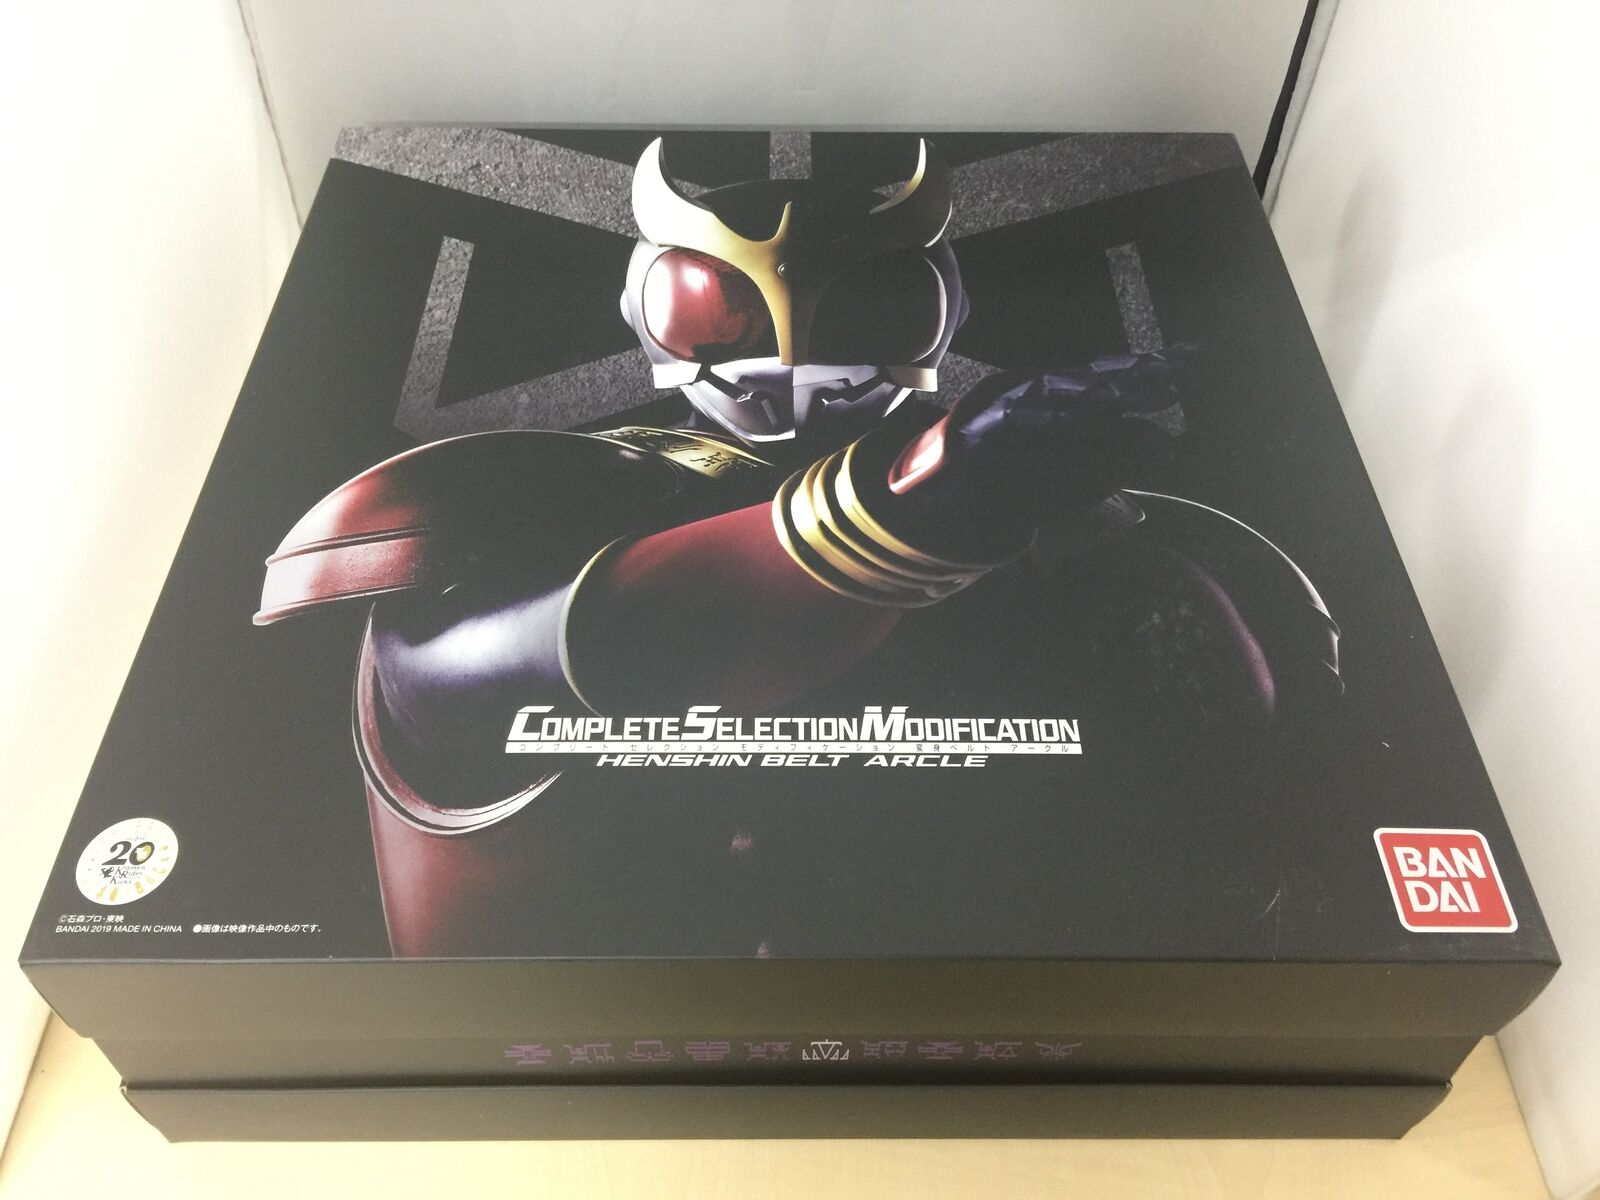 COMPLETE SELECTION MODIFICATION HENSHIN BELT ARCLE Kamen Rider Kuuga